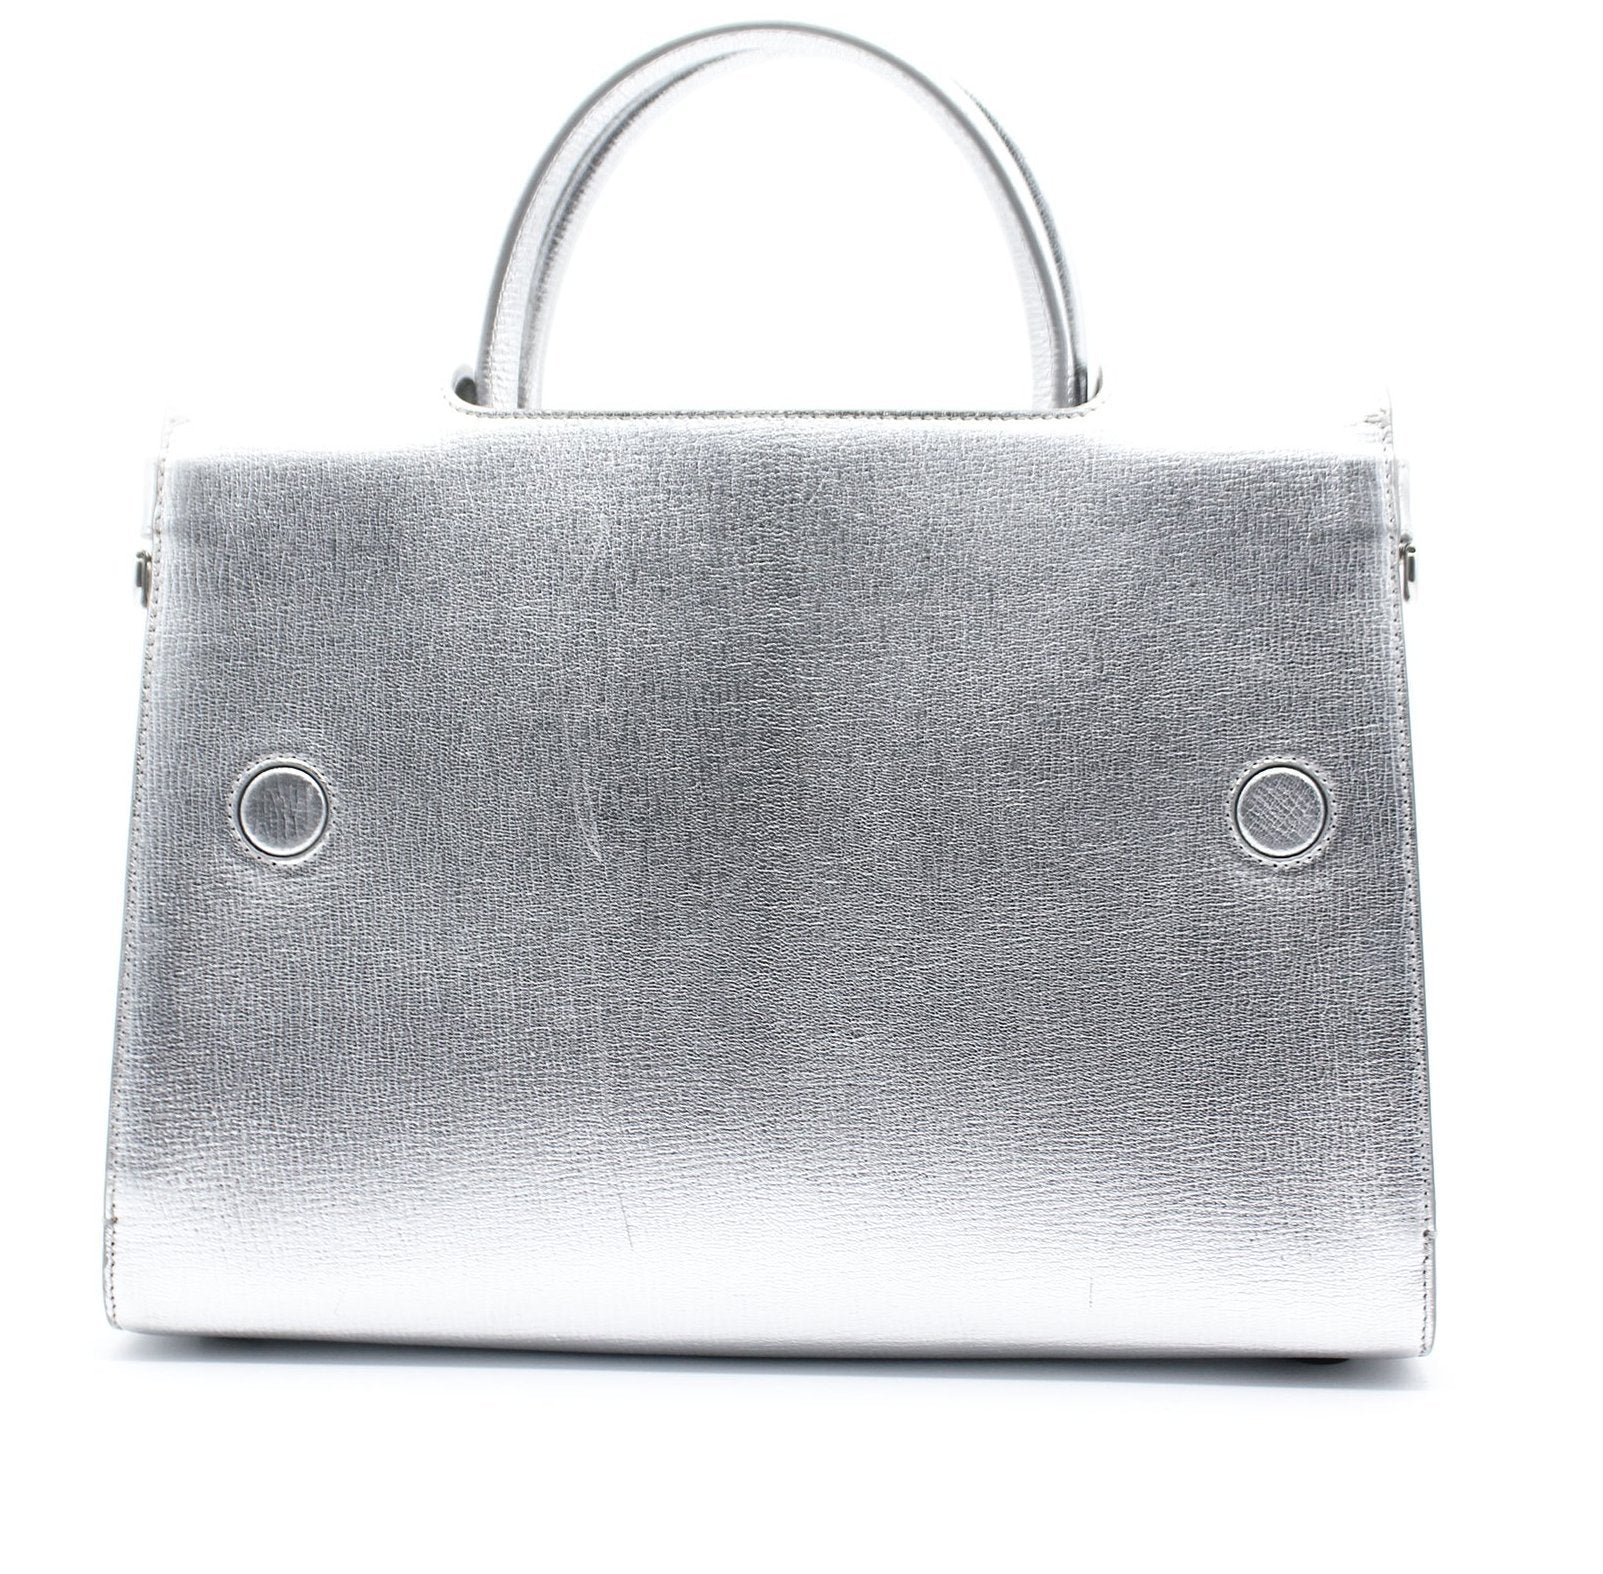 Dior Diorever Medium Bag